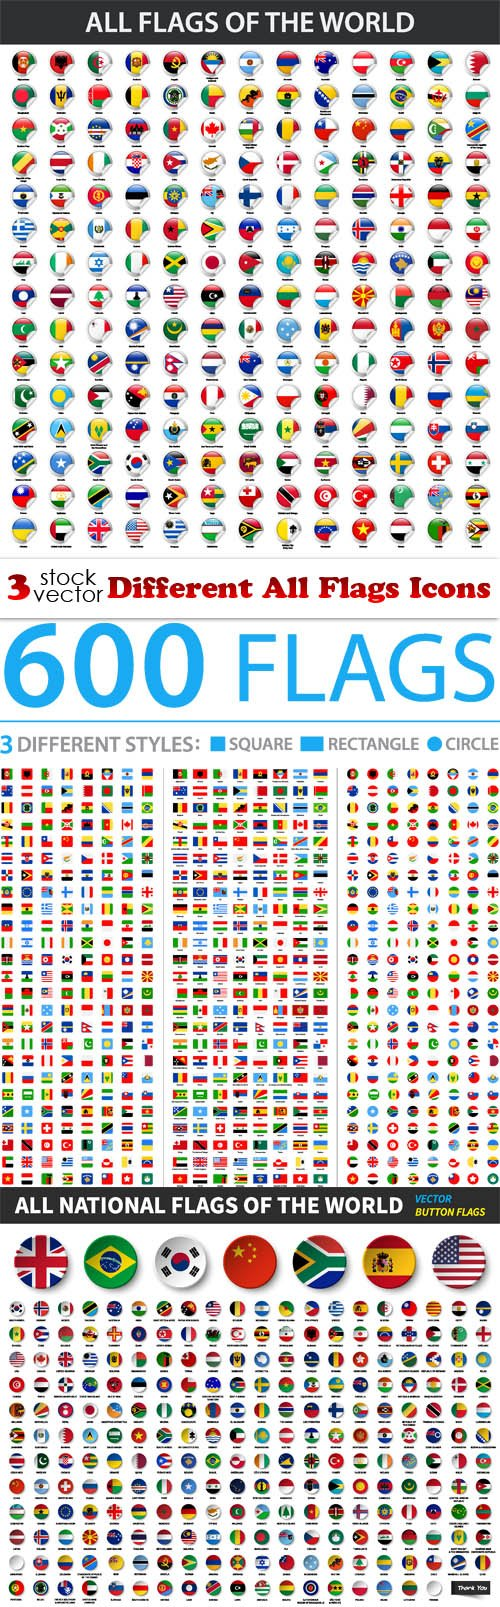 Vectors - Different All Flags Icons